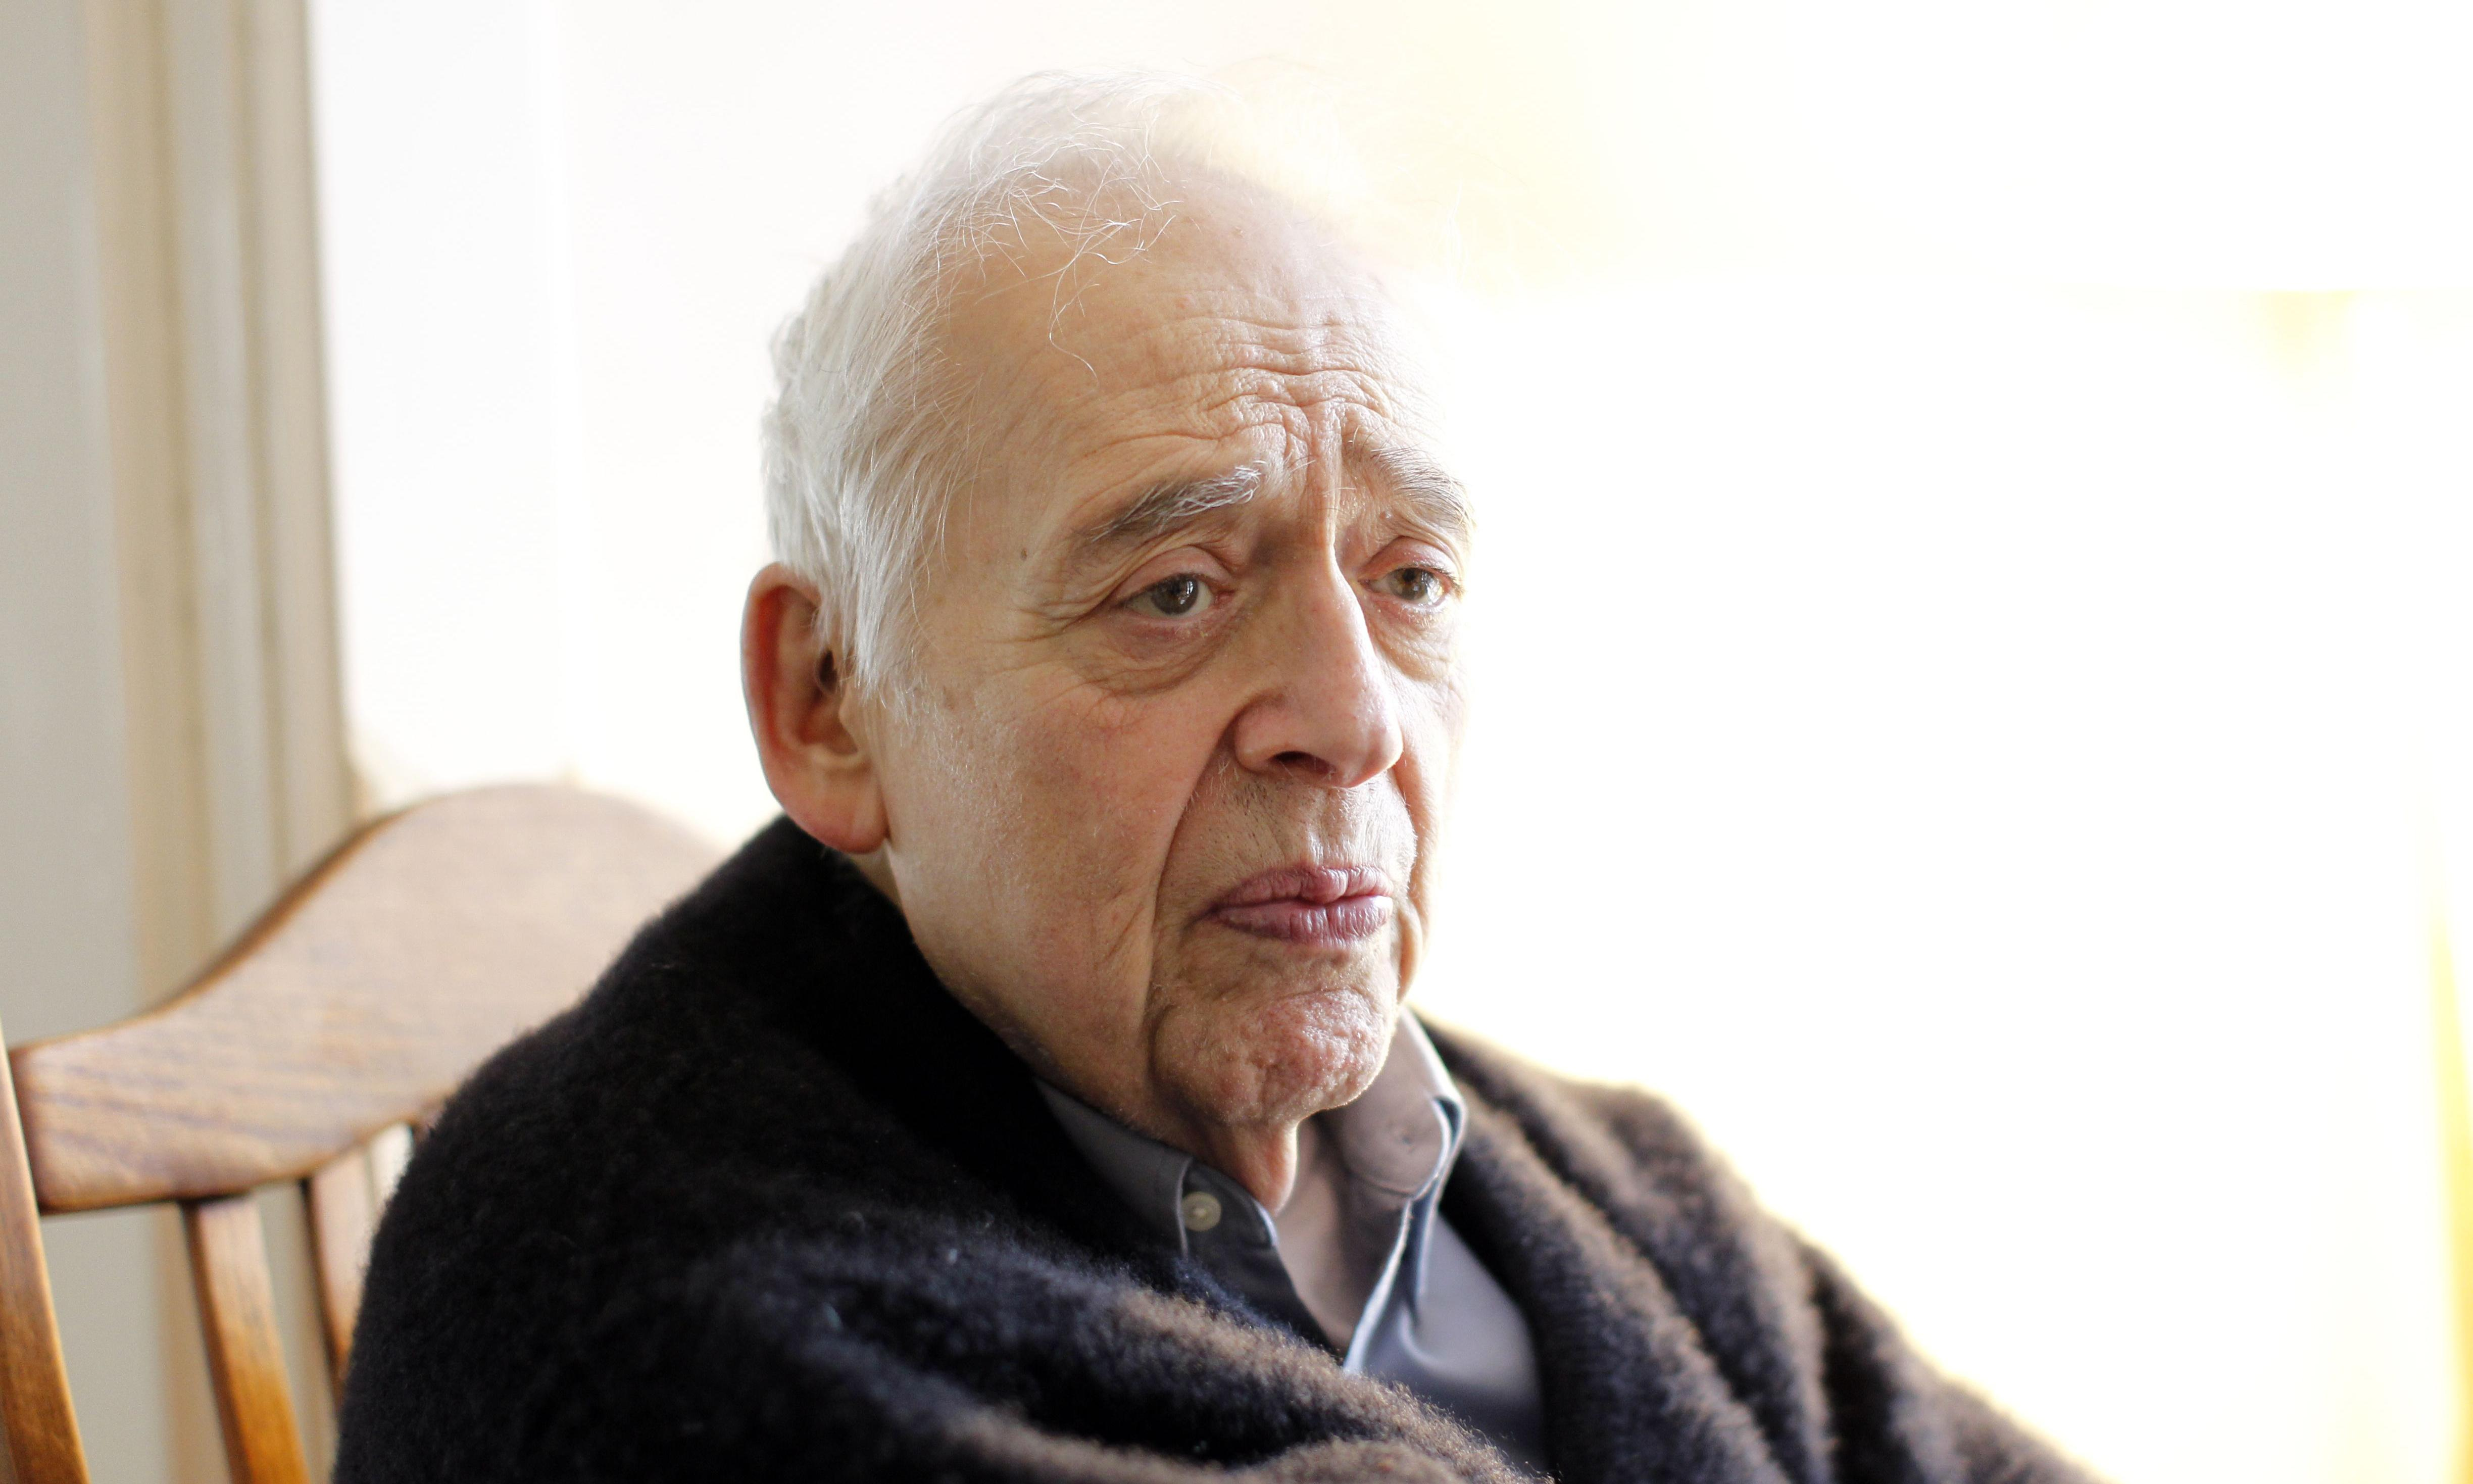 Harold Bloom, author and literary critic, dies at age 89